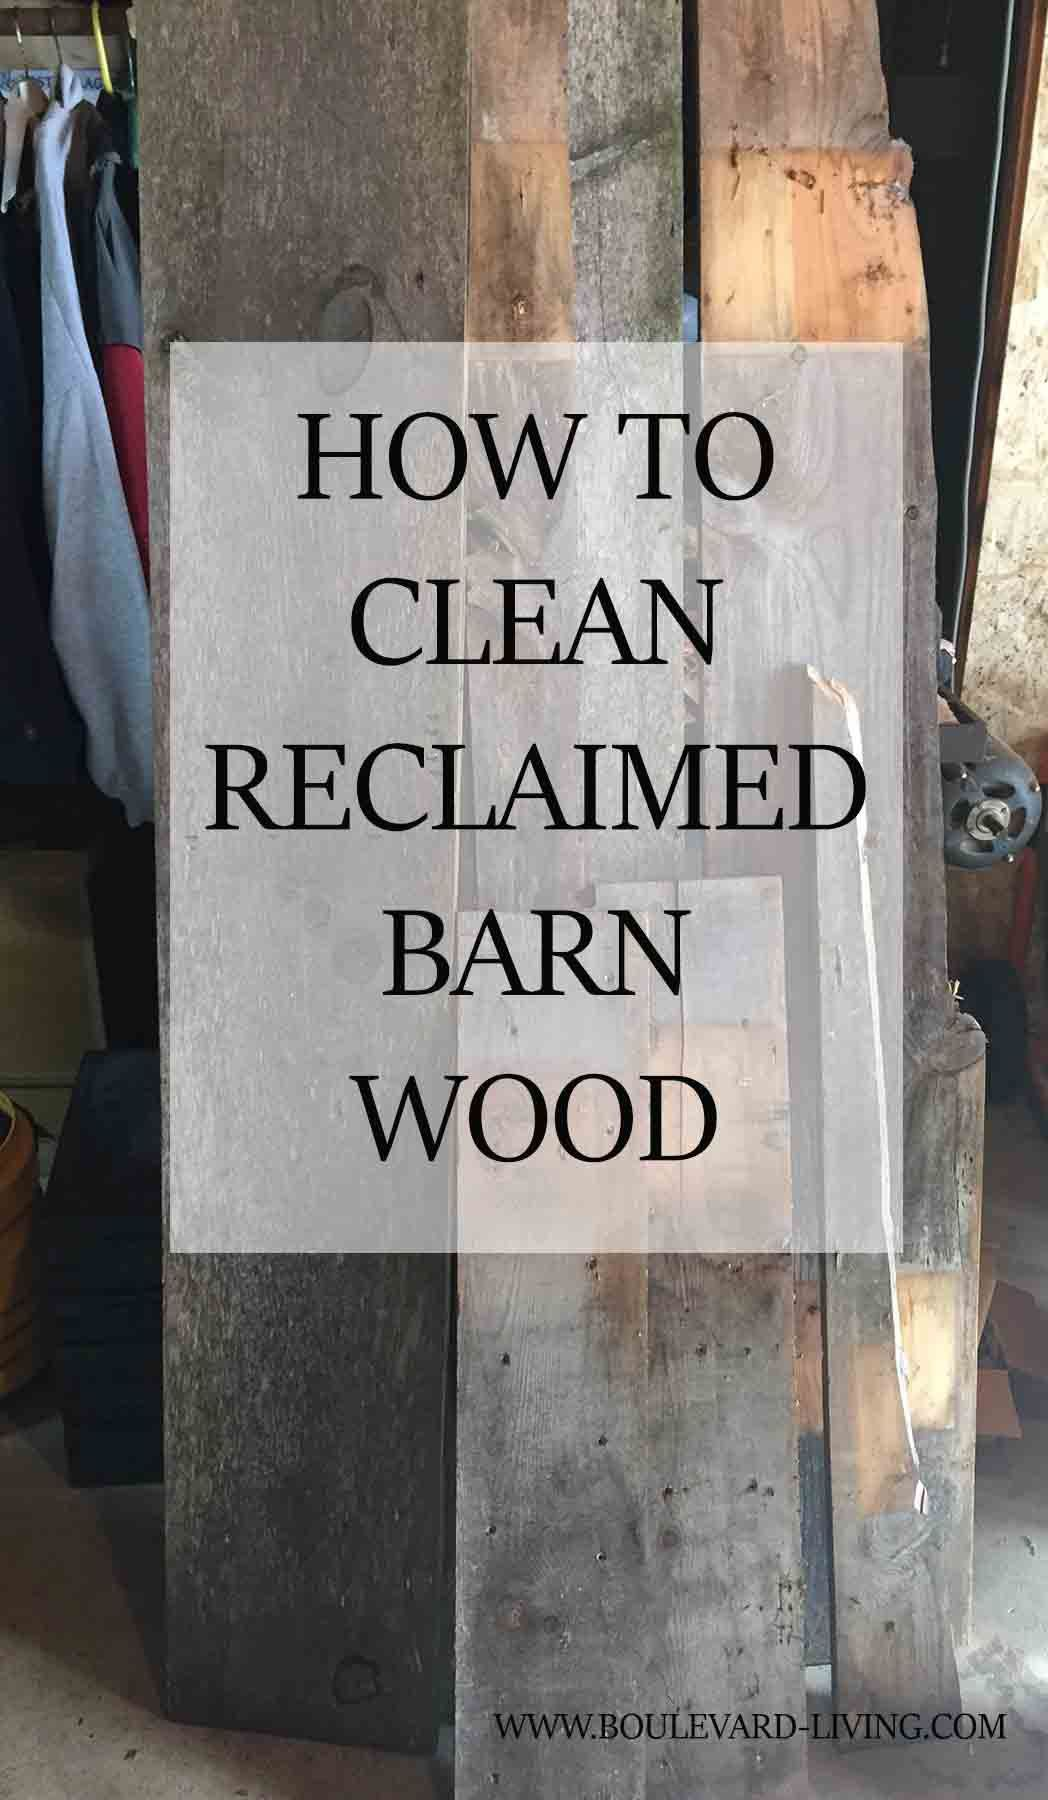 How to Clean Reclaimed Barn Wood | Barn wood, Barn and Woods